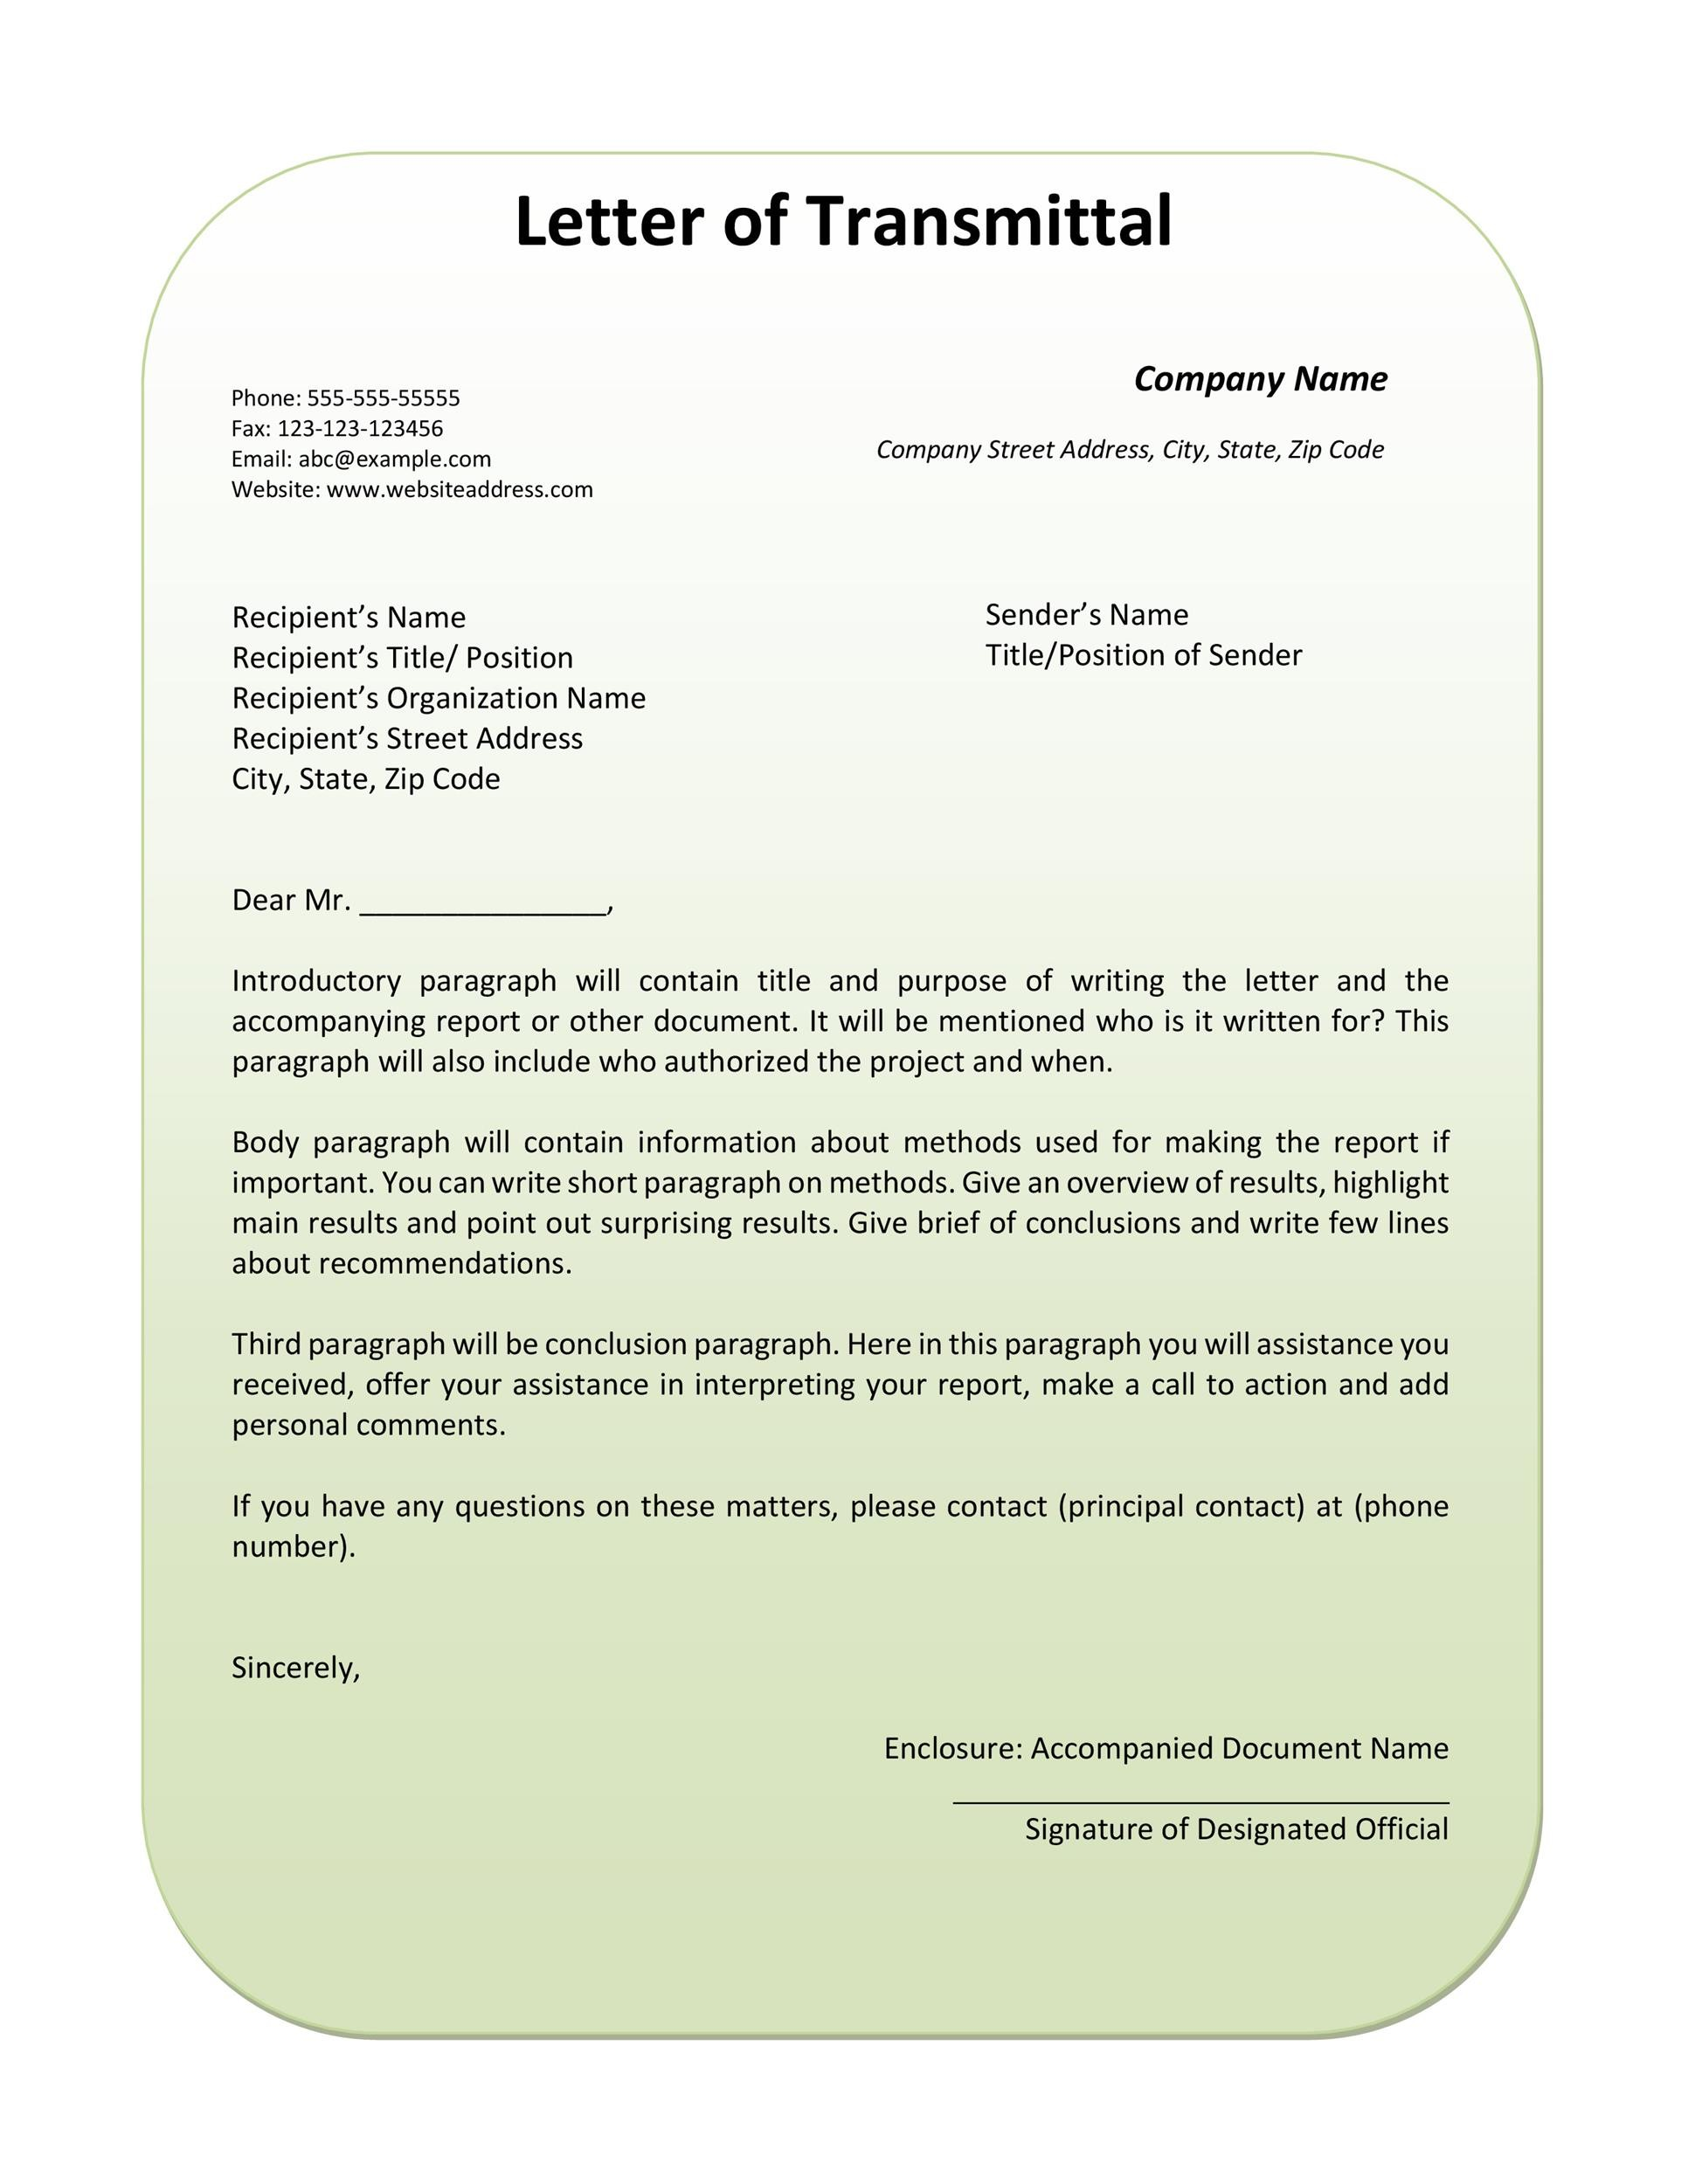 Free letter of transmittal template 37